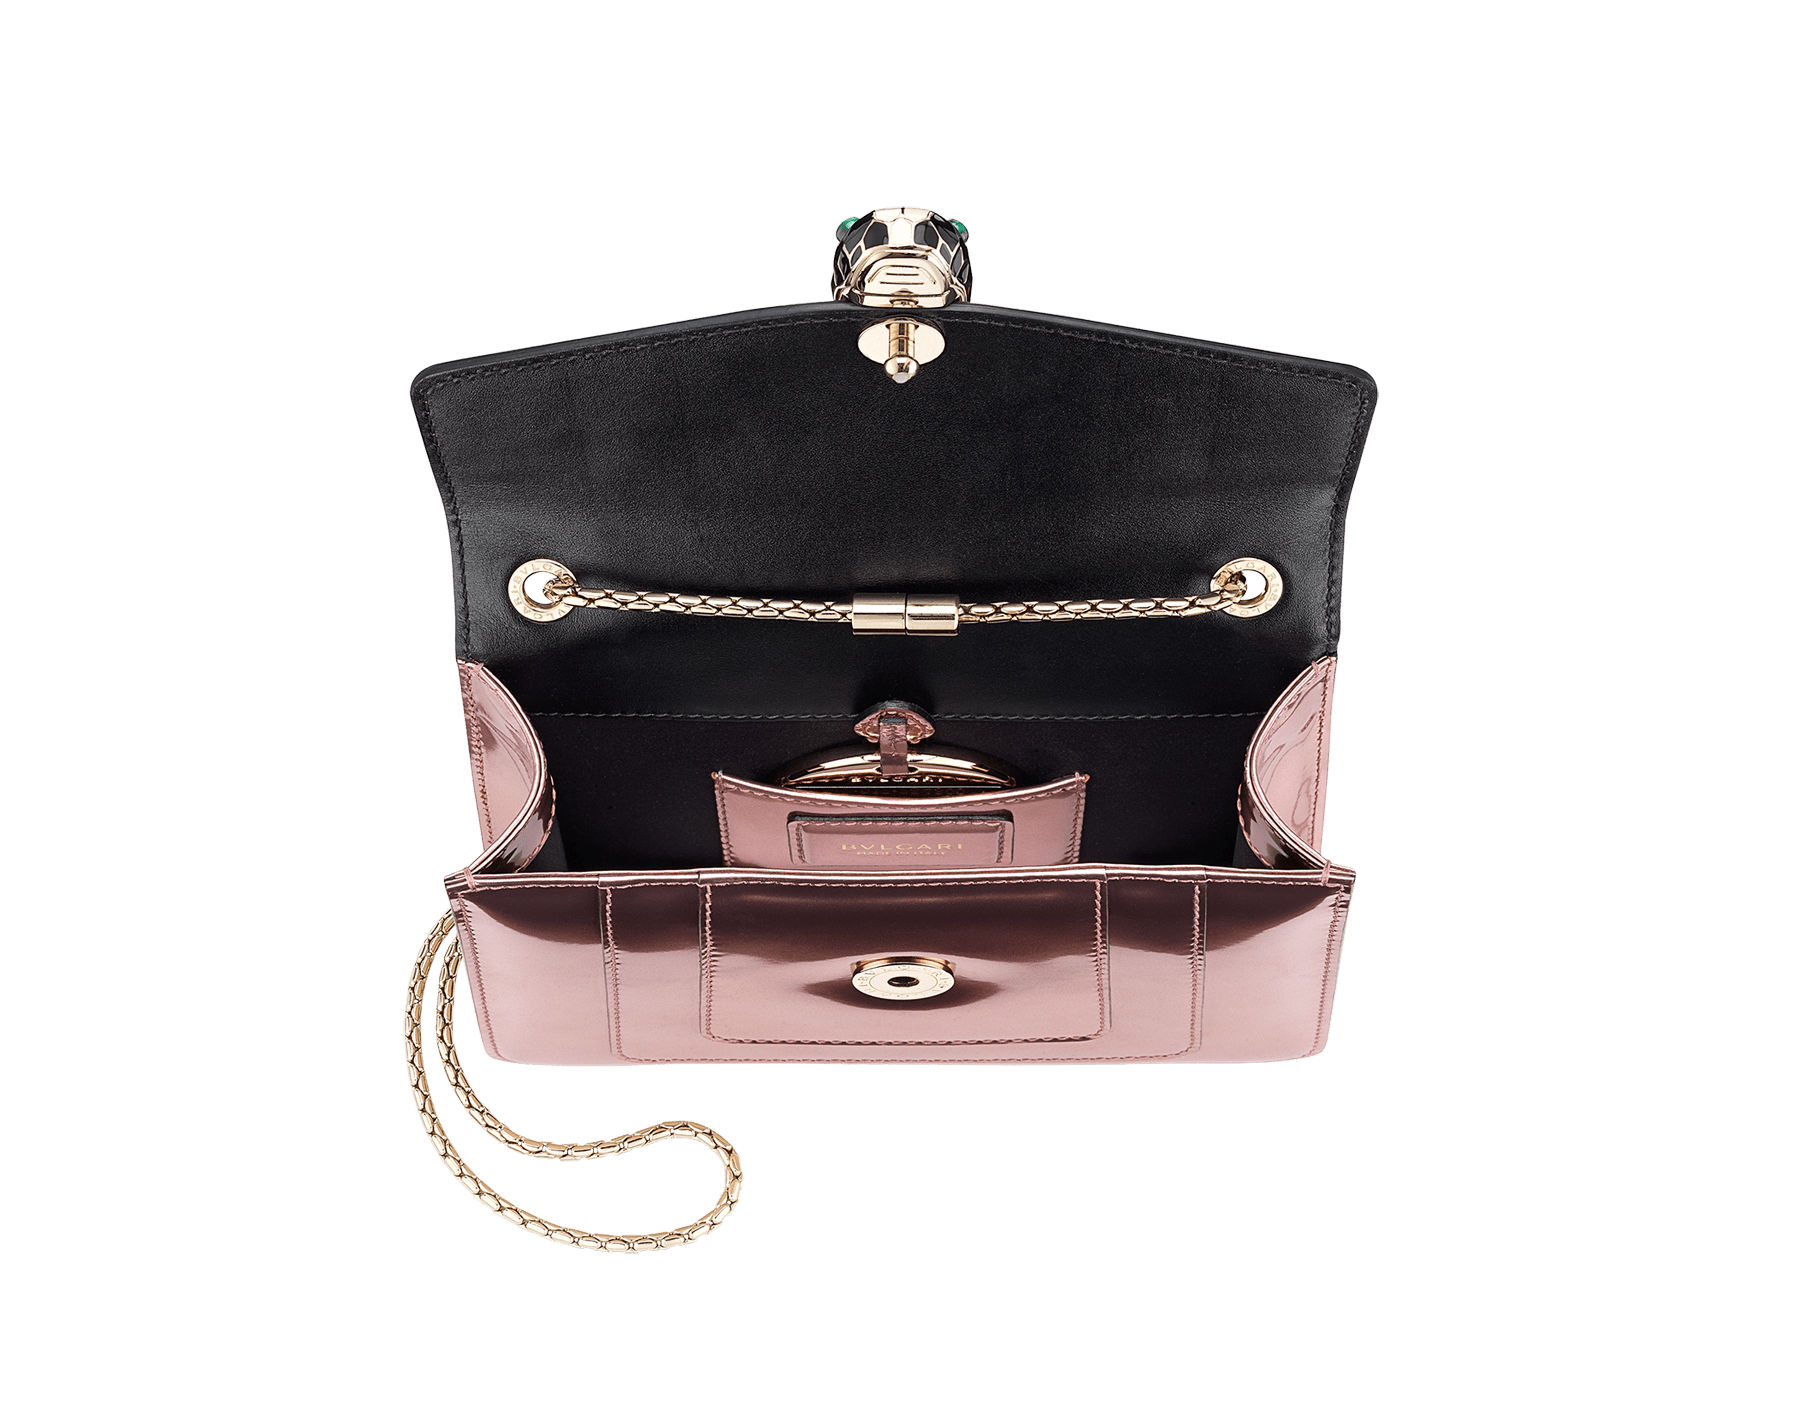 Flap cover bag Serpenti Forever in rose quartz brushed metallic calf leather. Brass light gold plated tempting snake head closure in black and white enamel, with eyes in green malachite. 422-BMCLb image 5